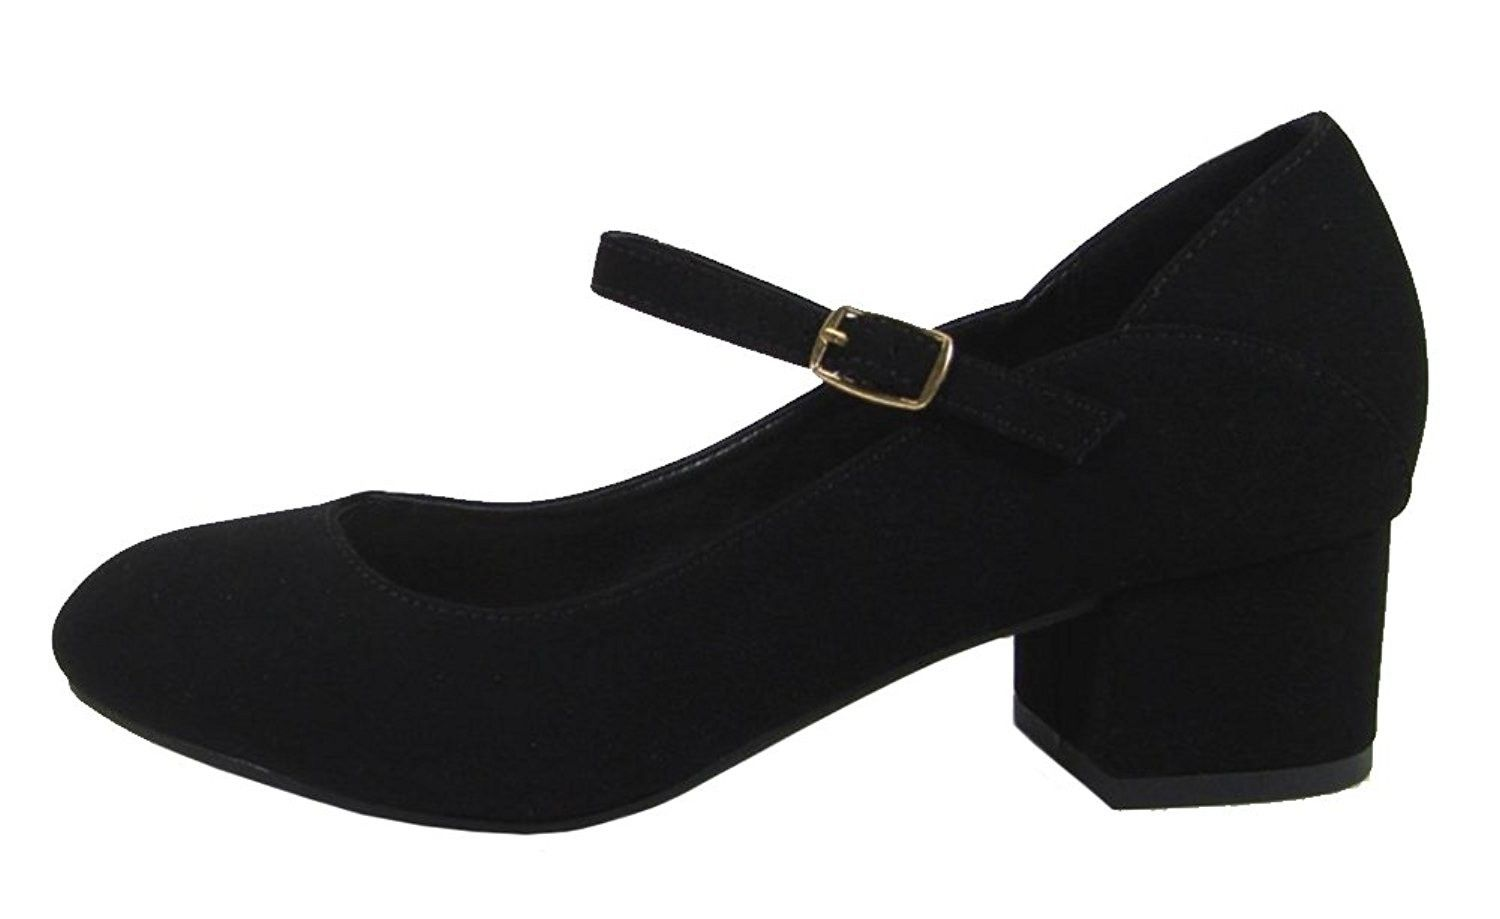 d19bd94de41 Comfort Women s Mary Jane Mid Chunky Block Heel Pump - Black Nubuck ...